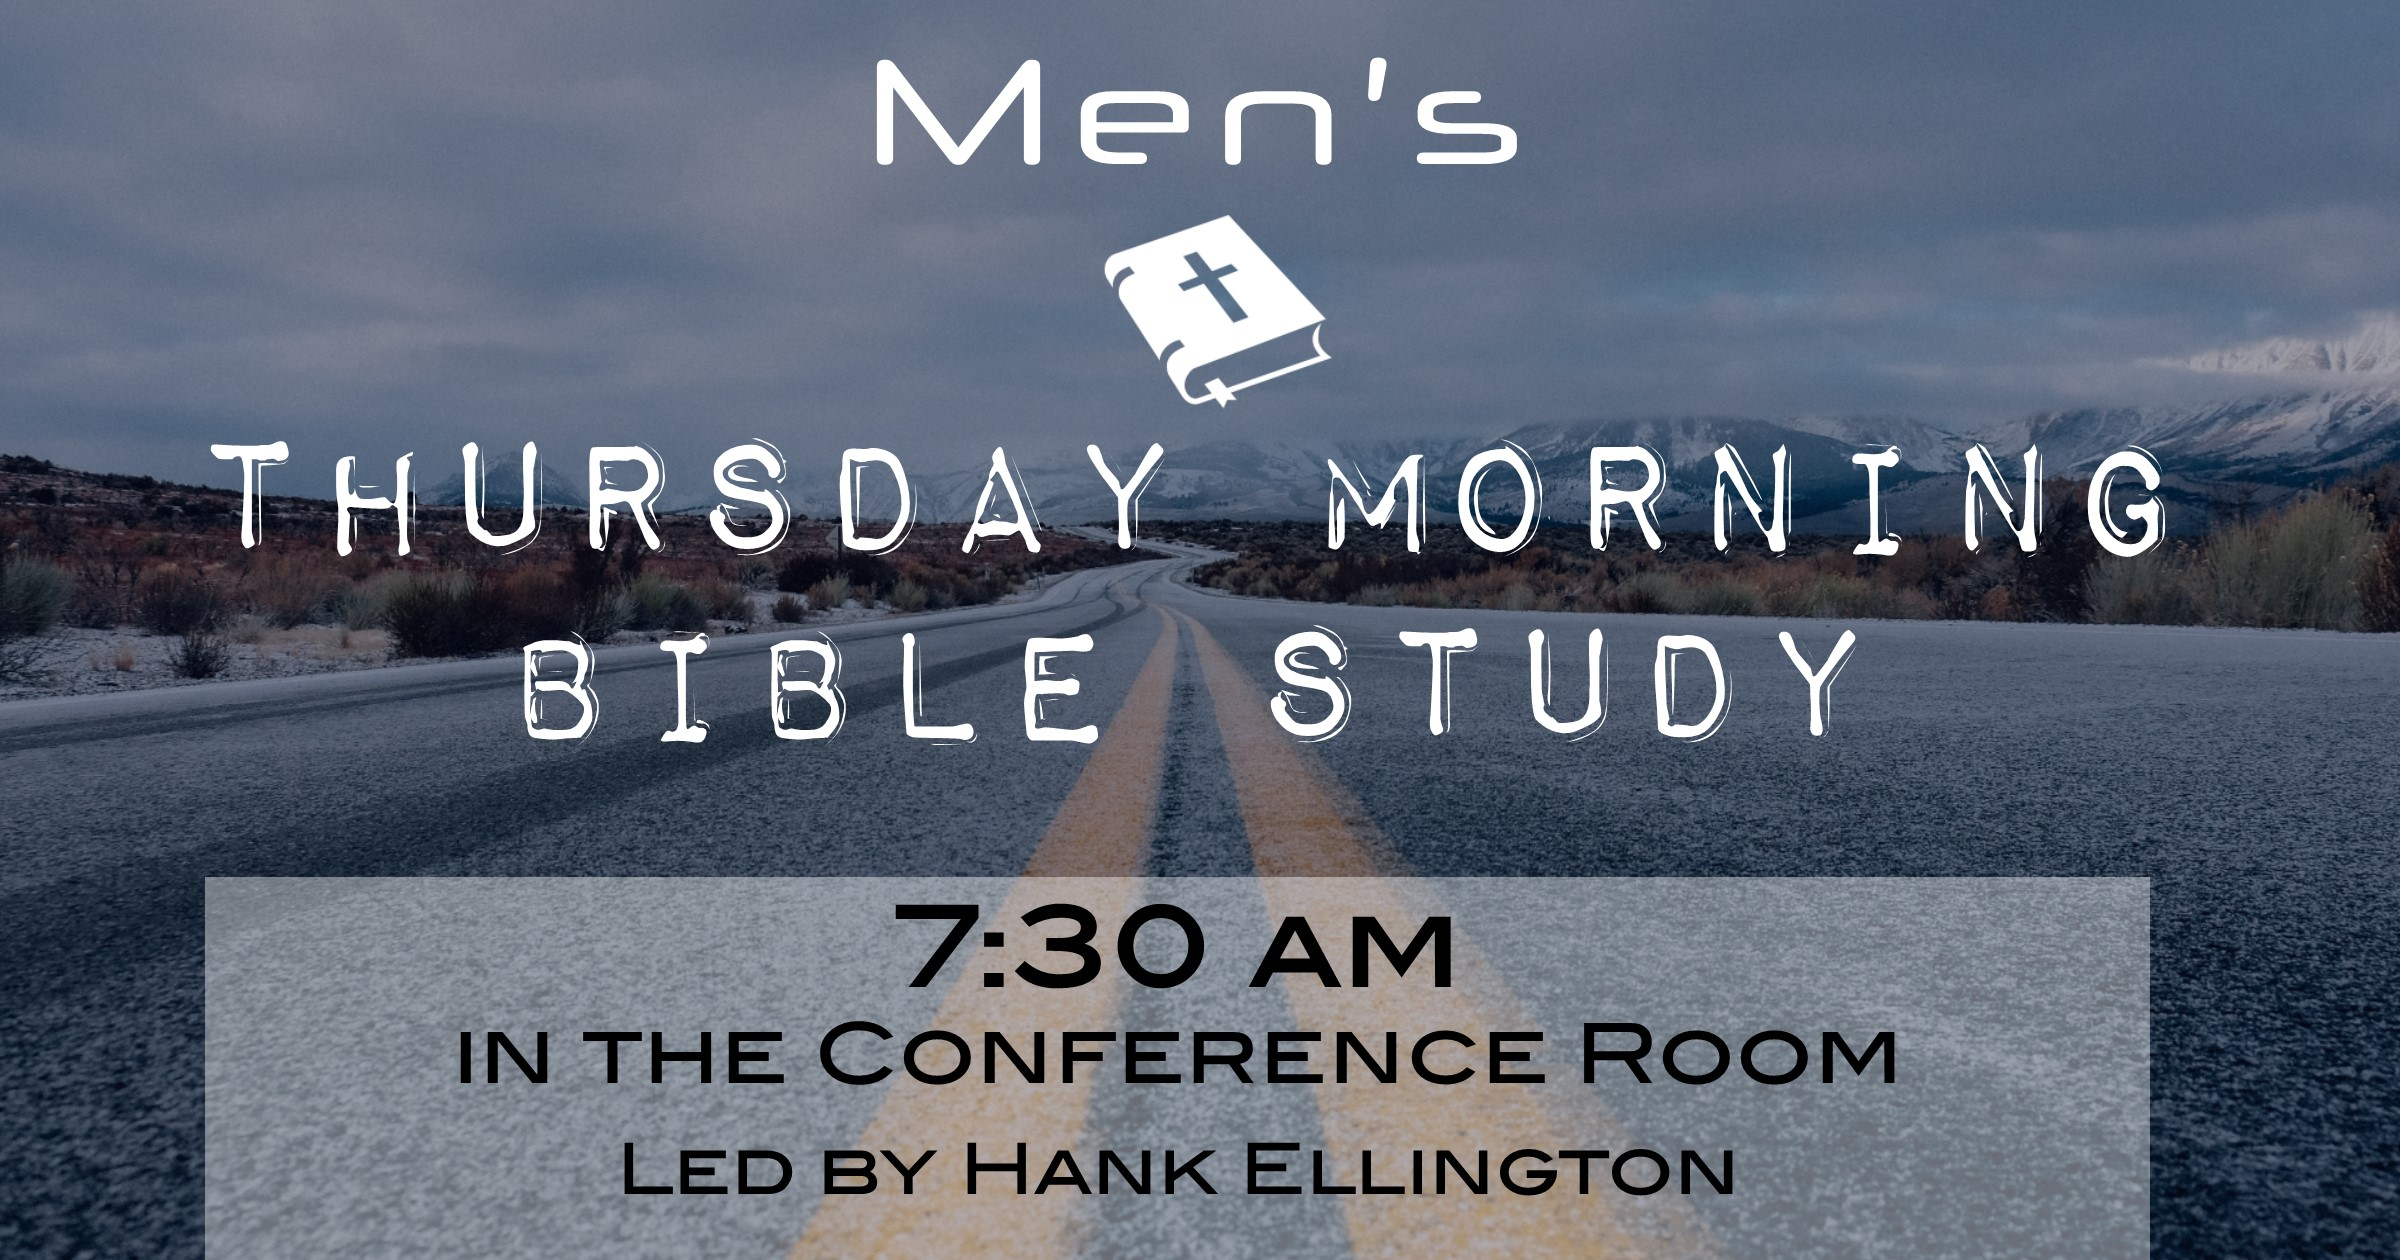 Thurs morning mens bible study fb image.jpg